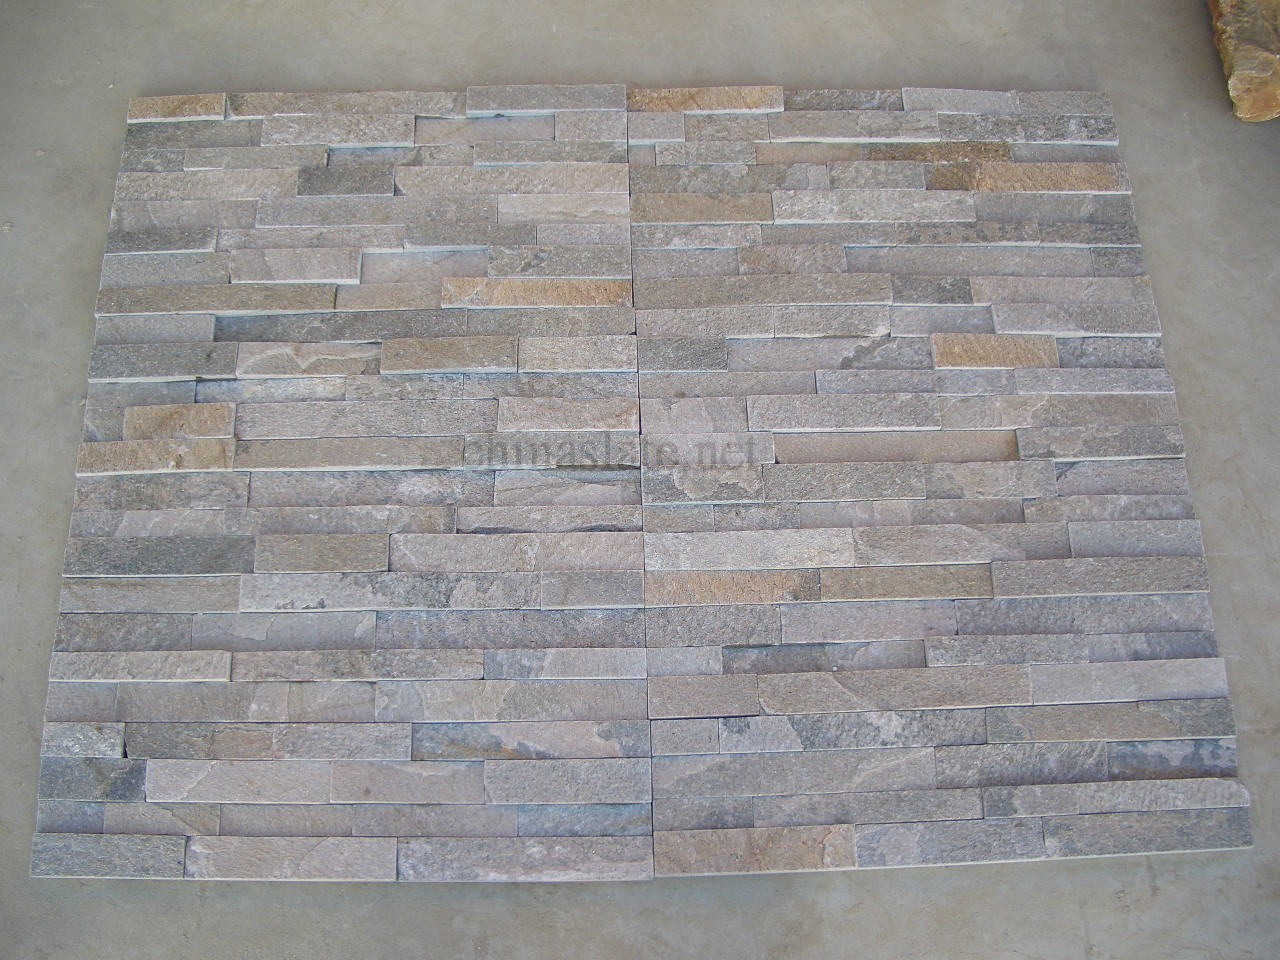 Various Color And Shape Of Stone Veneer Panels For Interior Or Exterior Decor Ideas: Grey Quartzite Cultured Stone Veneer Panels Ledge Wall Stone Pink Sandstone